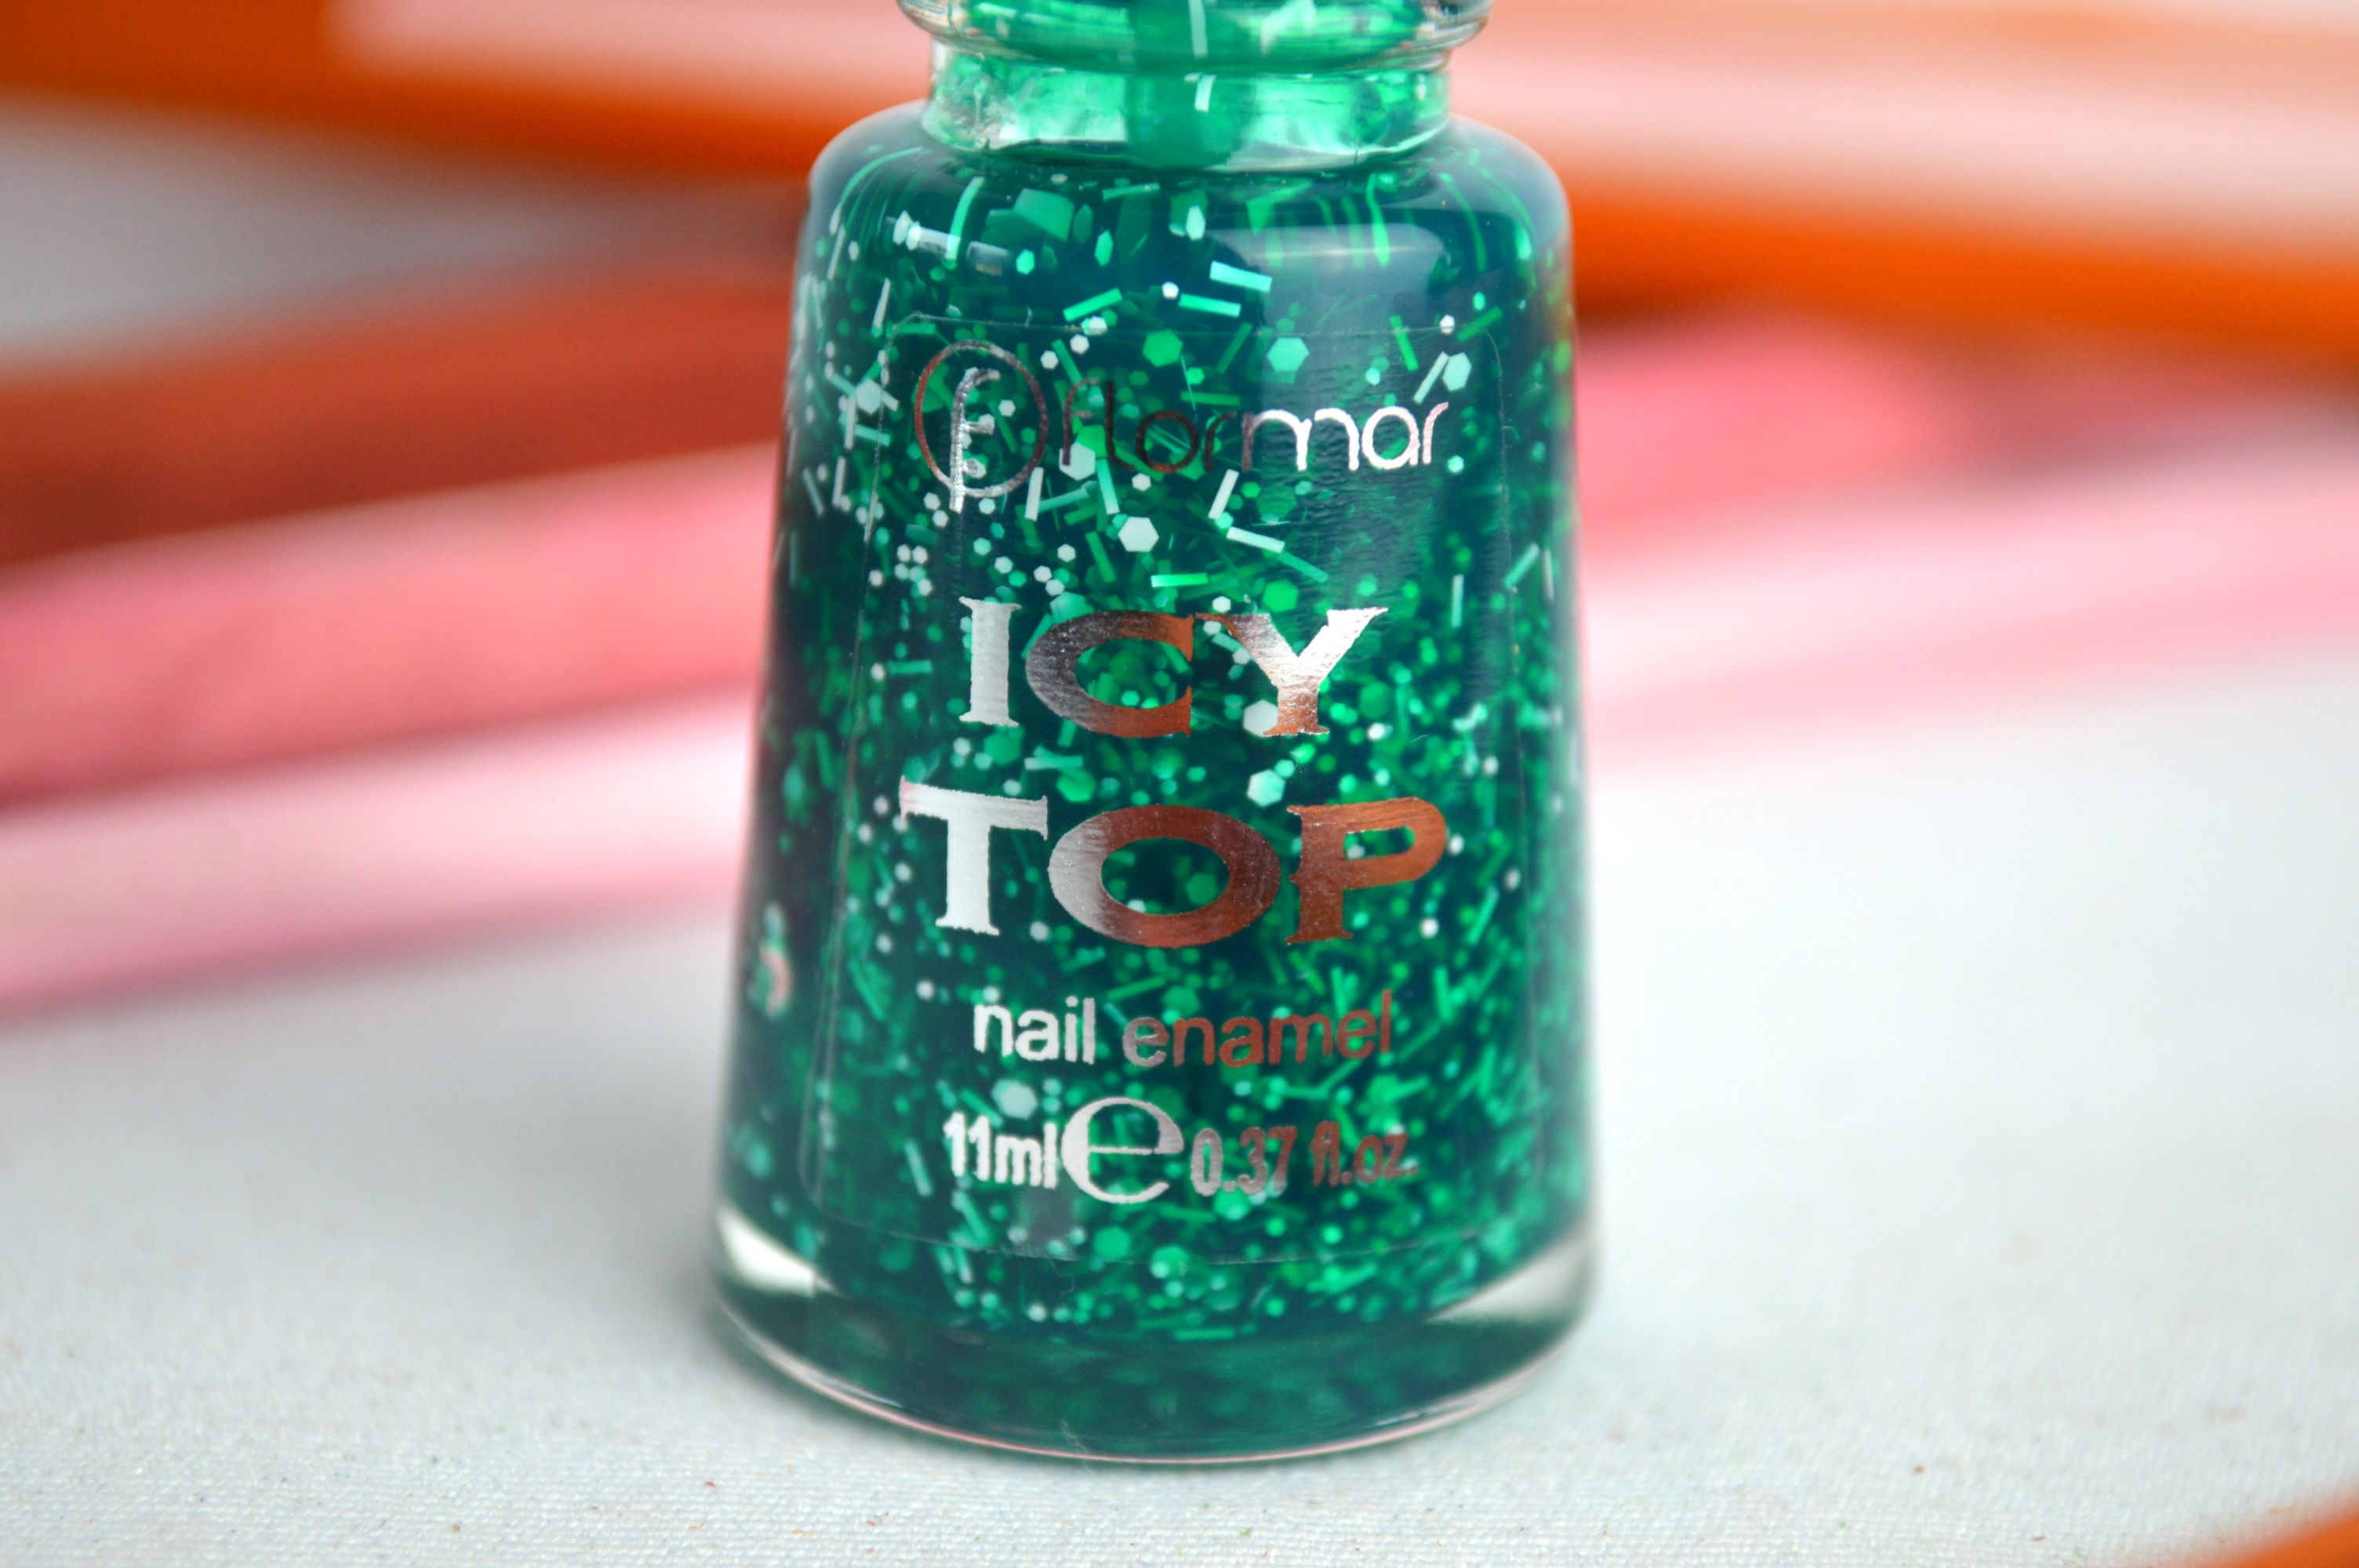 Flormar_Icy_Top_IT03_Review